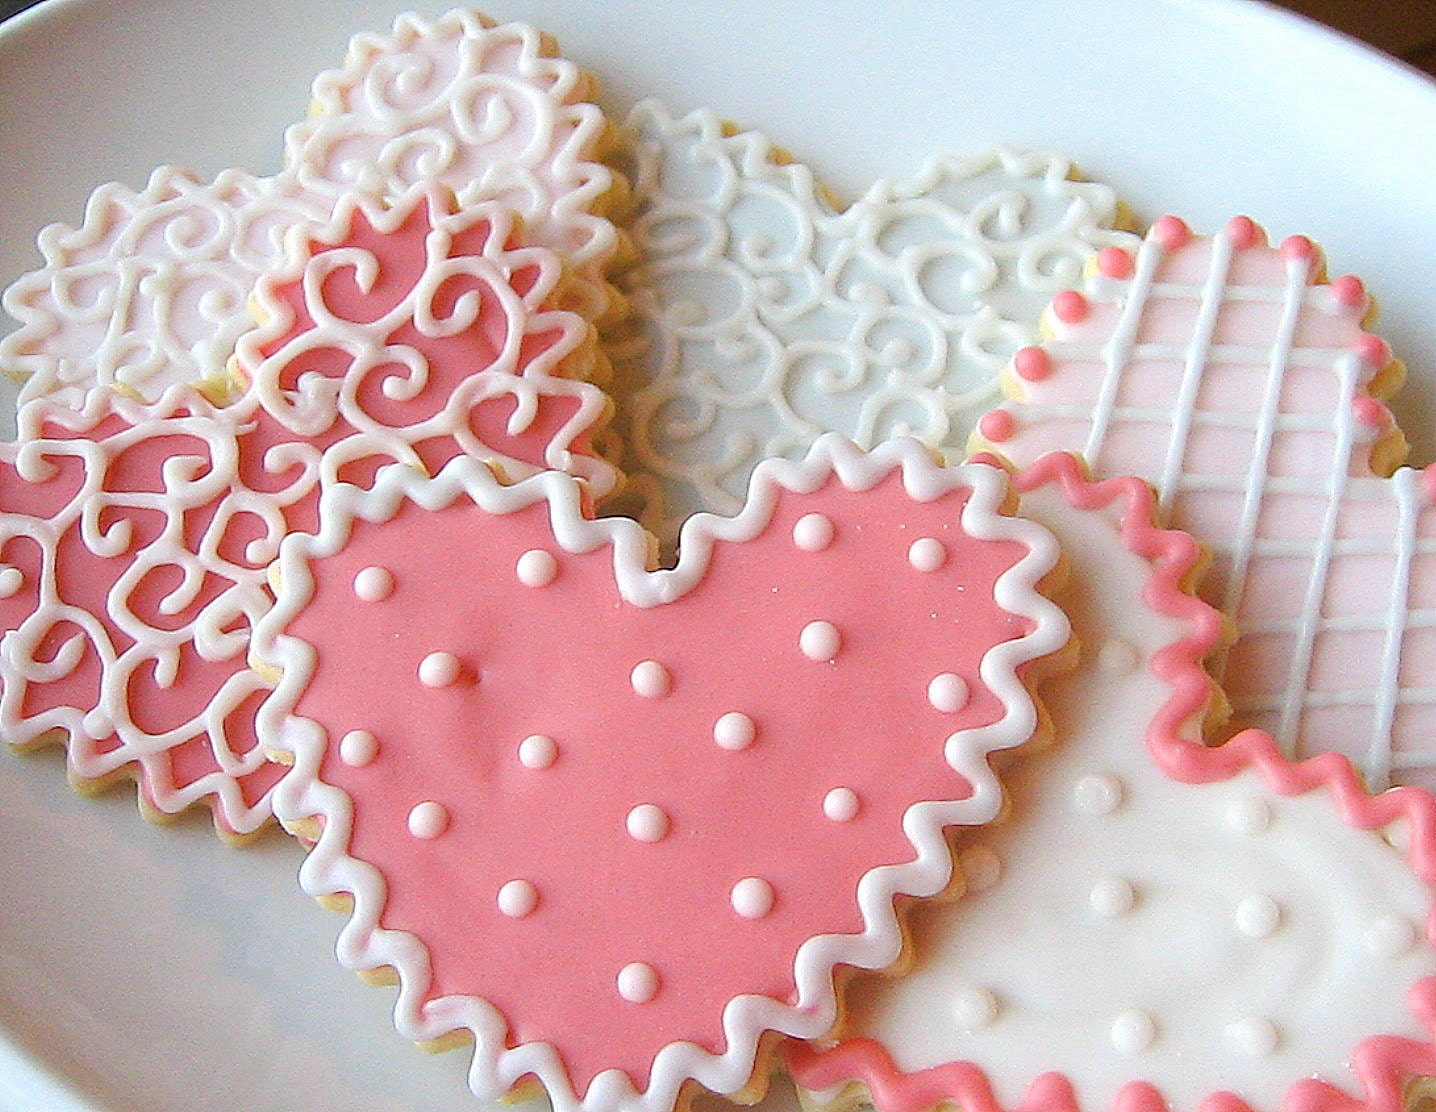 Where Can I Buy Heart Shaped Cookies